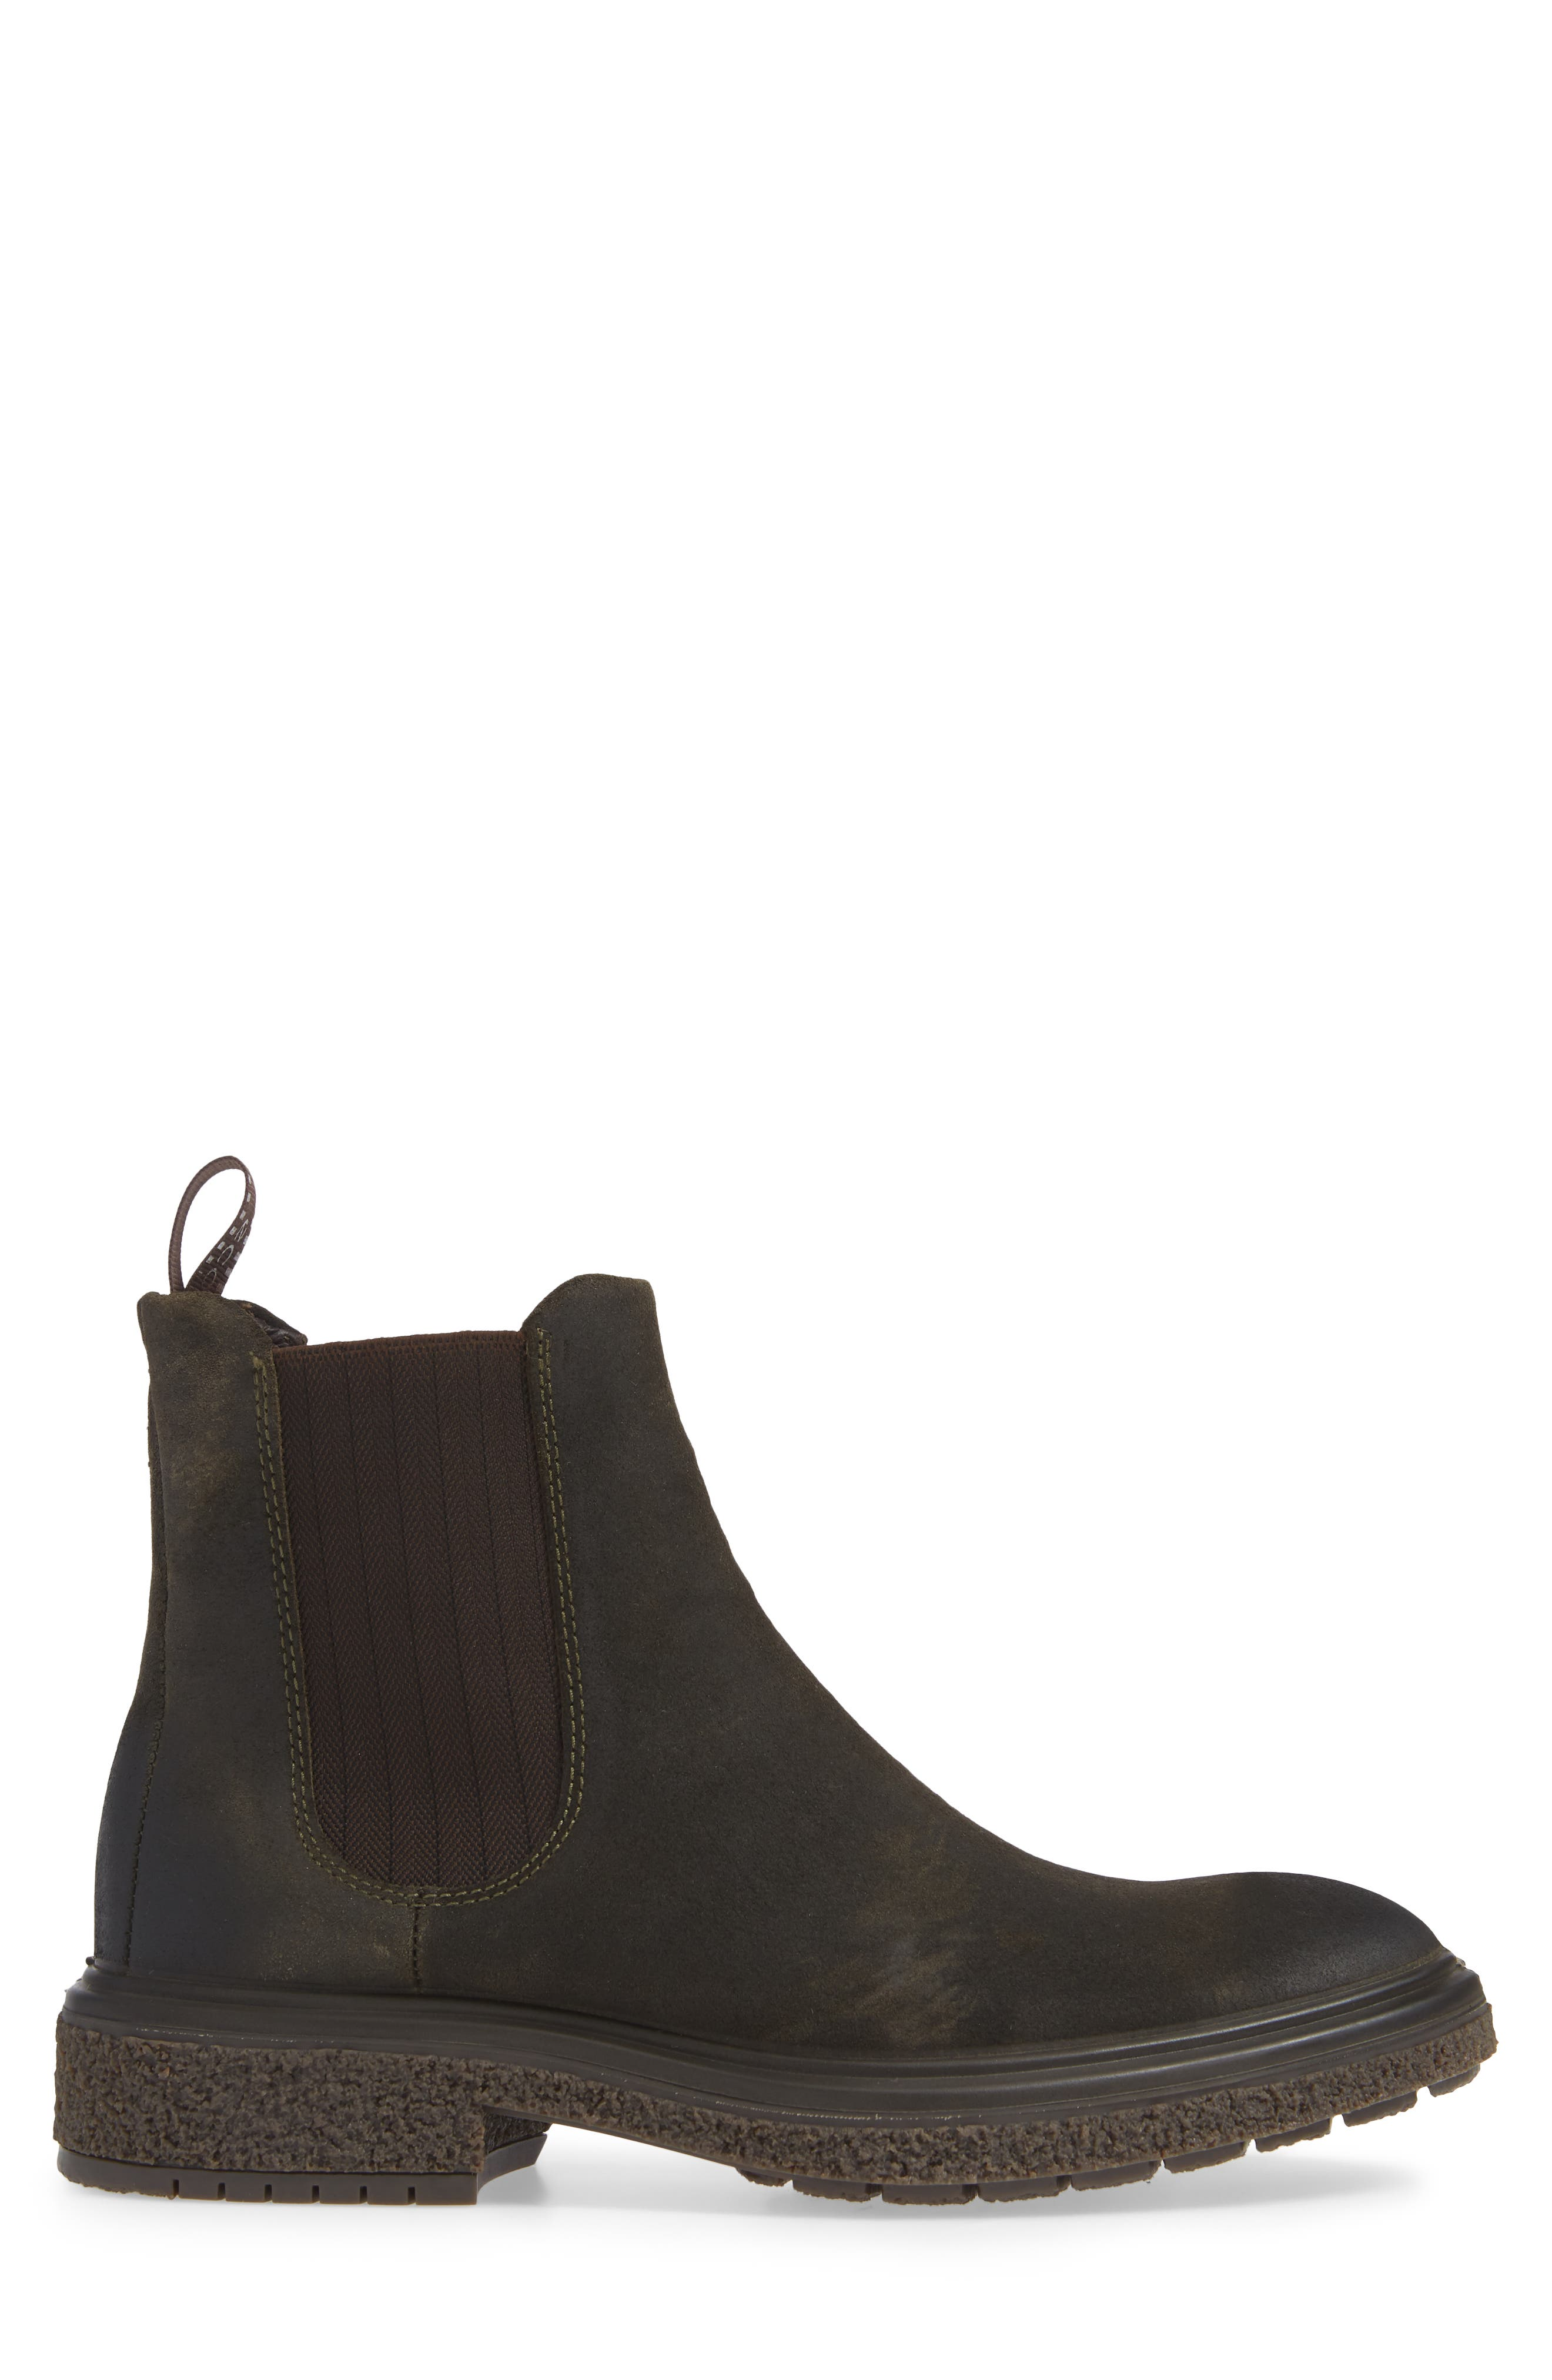 Crepetray Chelsea Boot,                             Alternate thumbnail 3, color,                             TARMAC SUEDE